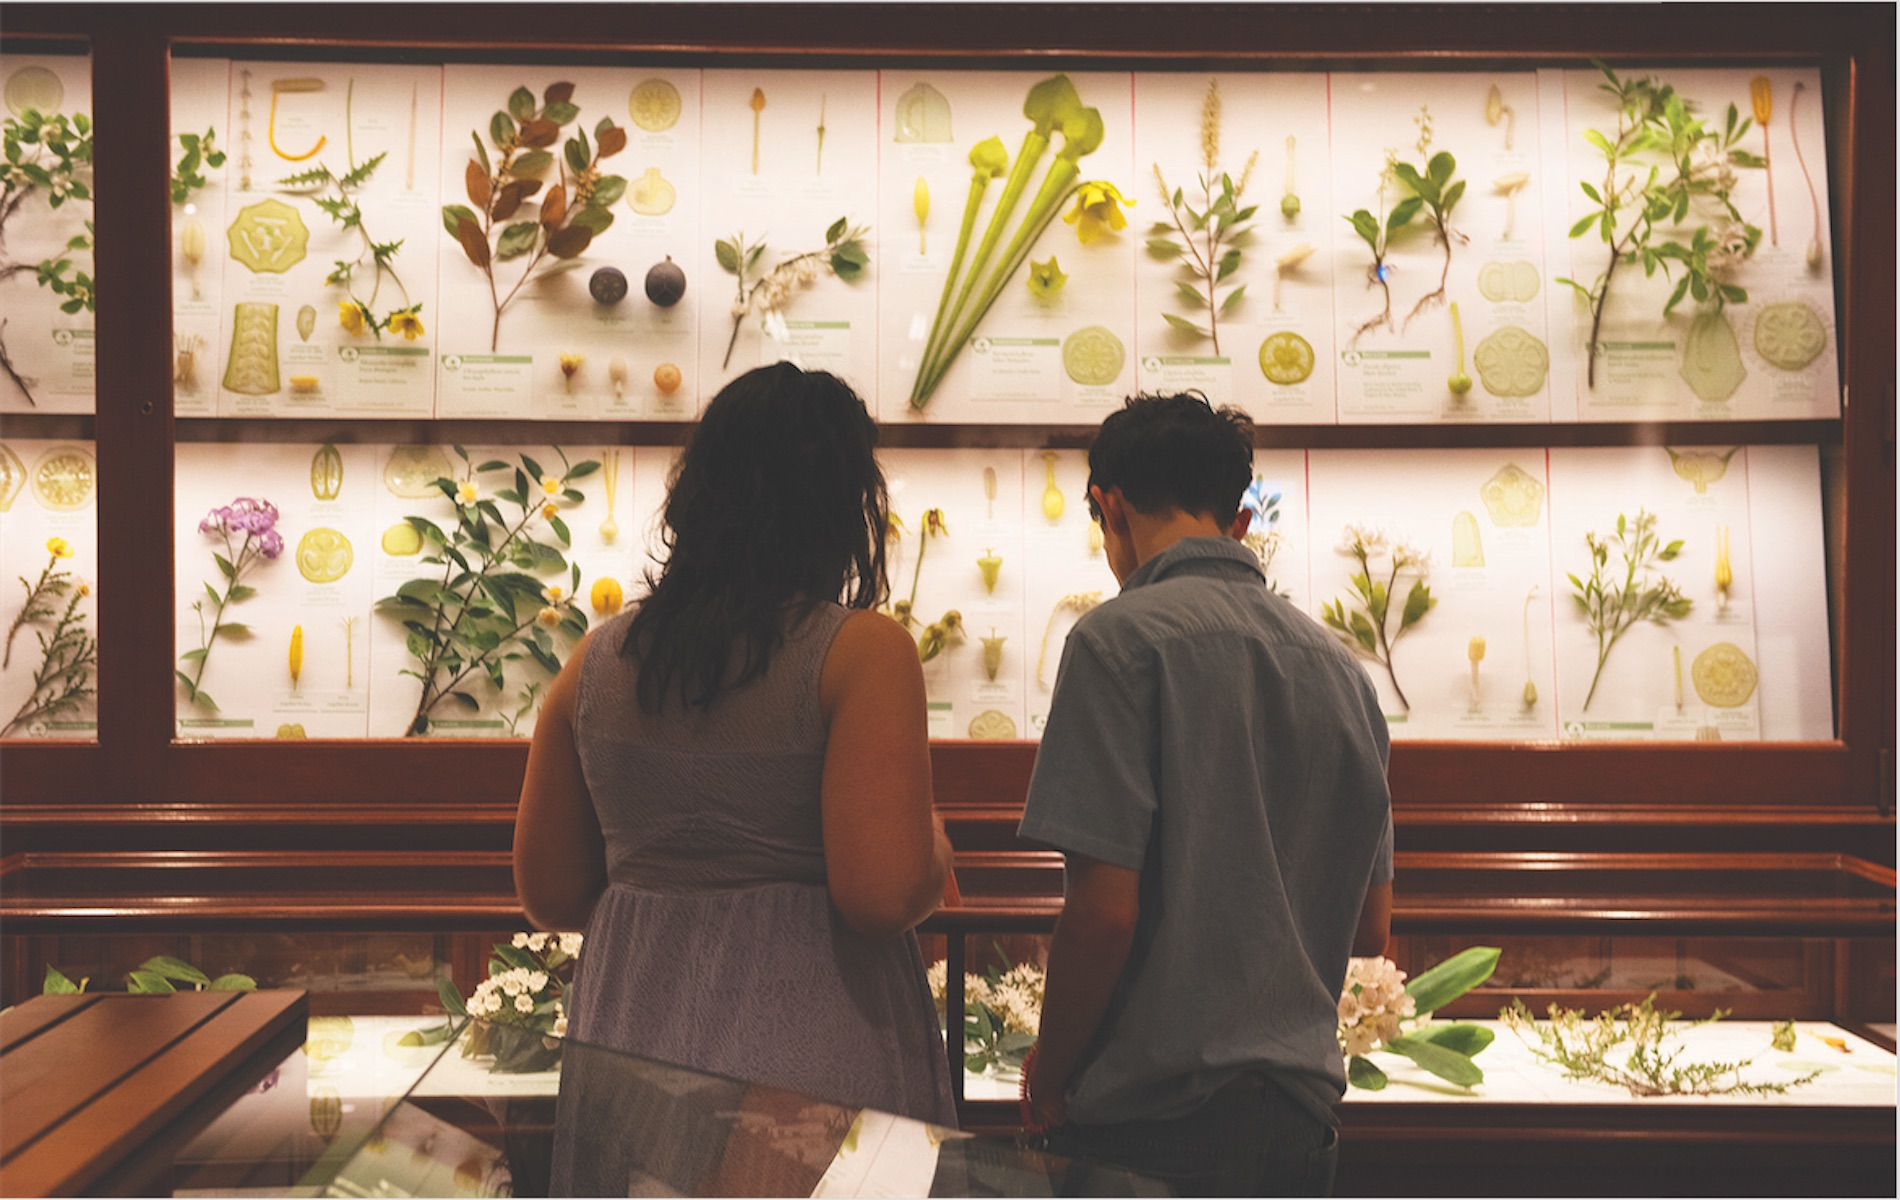 a woman on the left man on right both in silhouette in front a white framed exhibit of flowers, grasses and plants